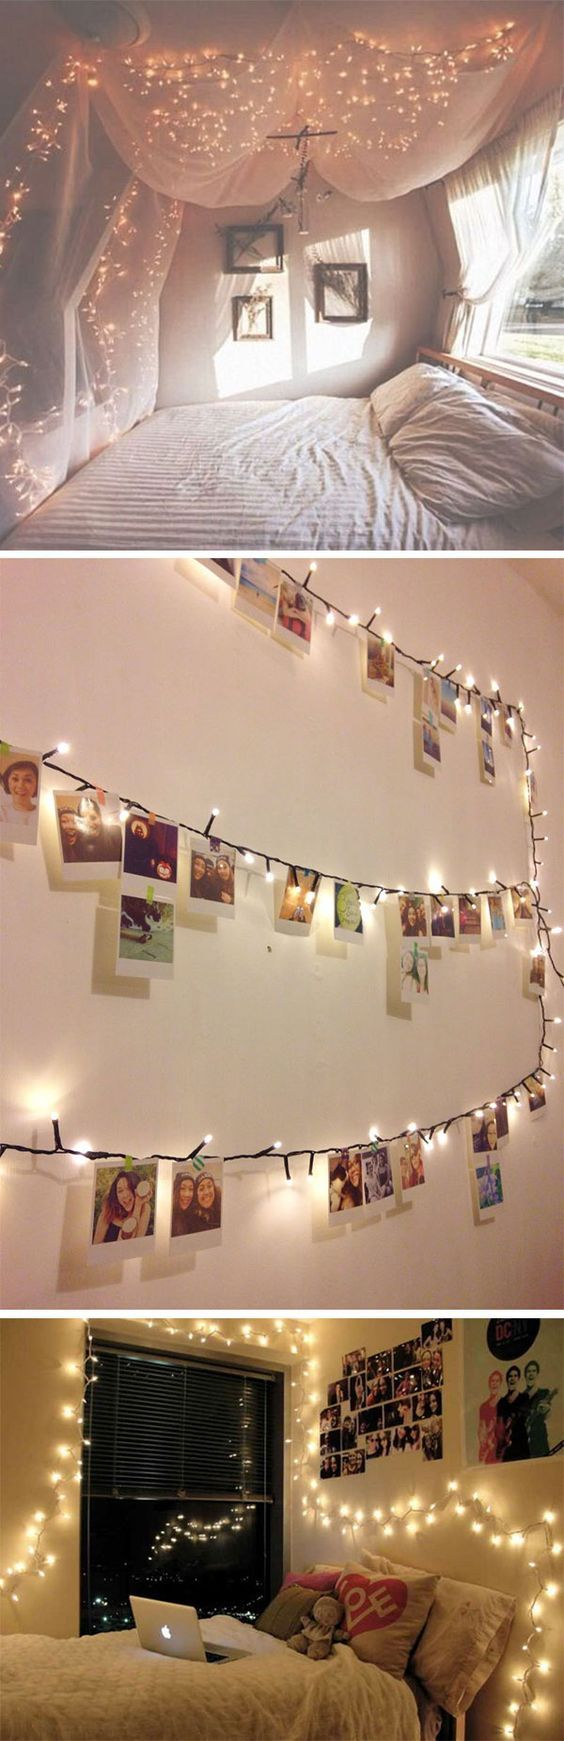 Best 25 Teen room decor ideas on Pinterest Diy bedroom